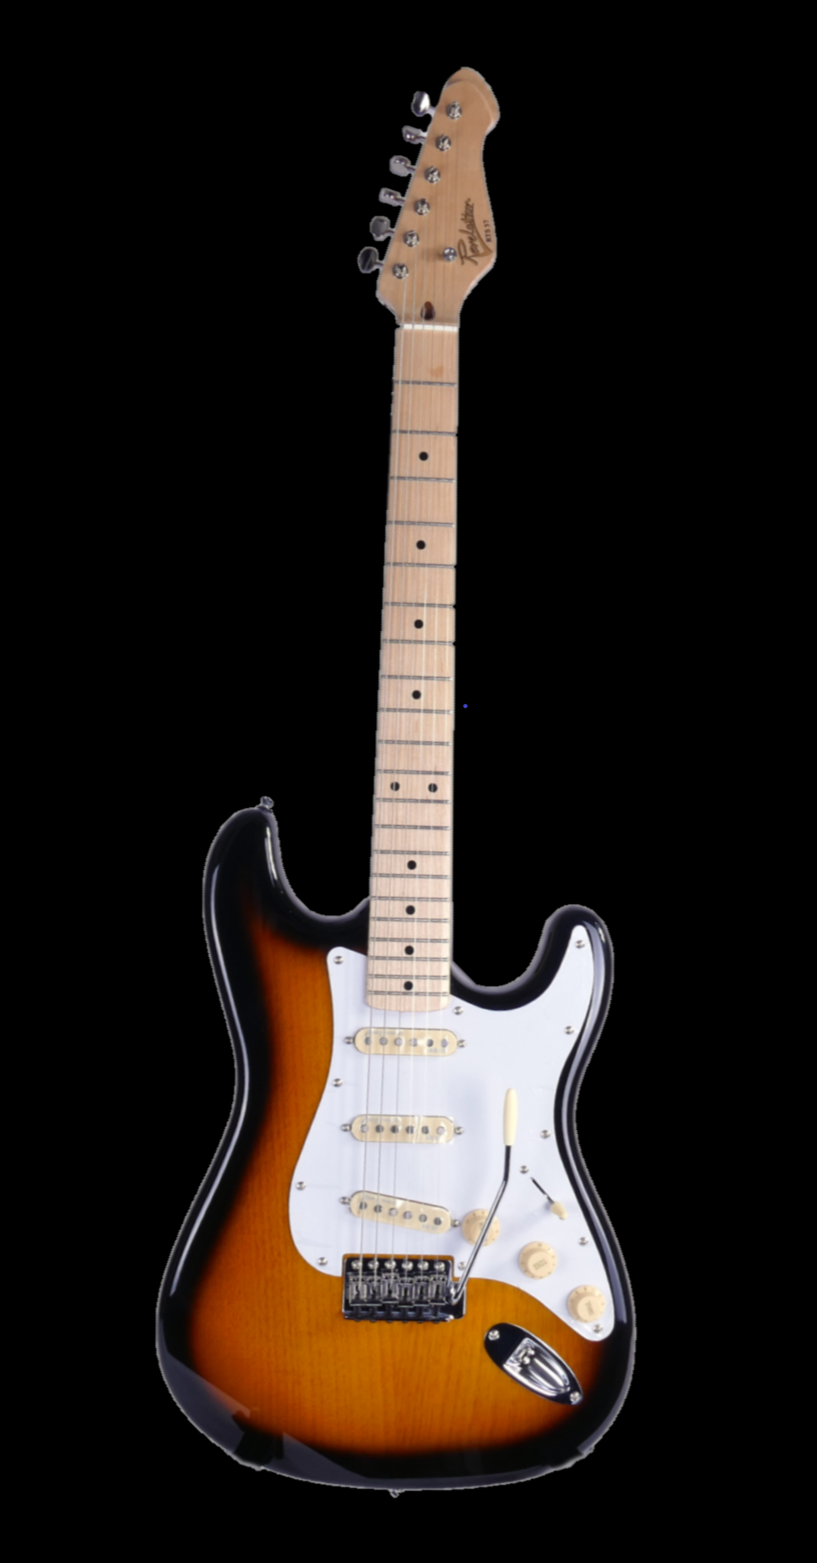 Revelation RST-57 Two Tone Sunburst Maple board Electric Guitar